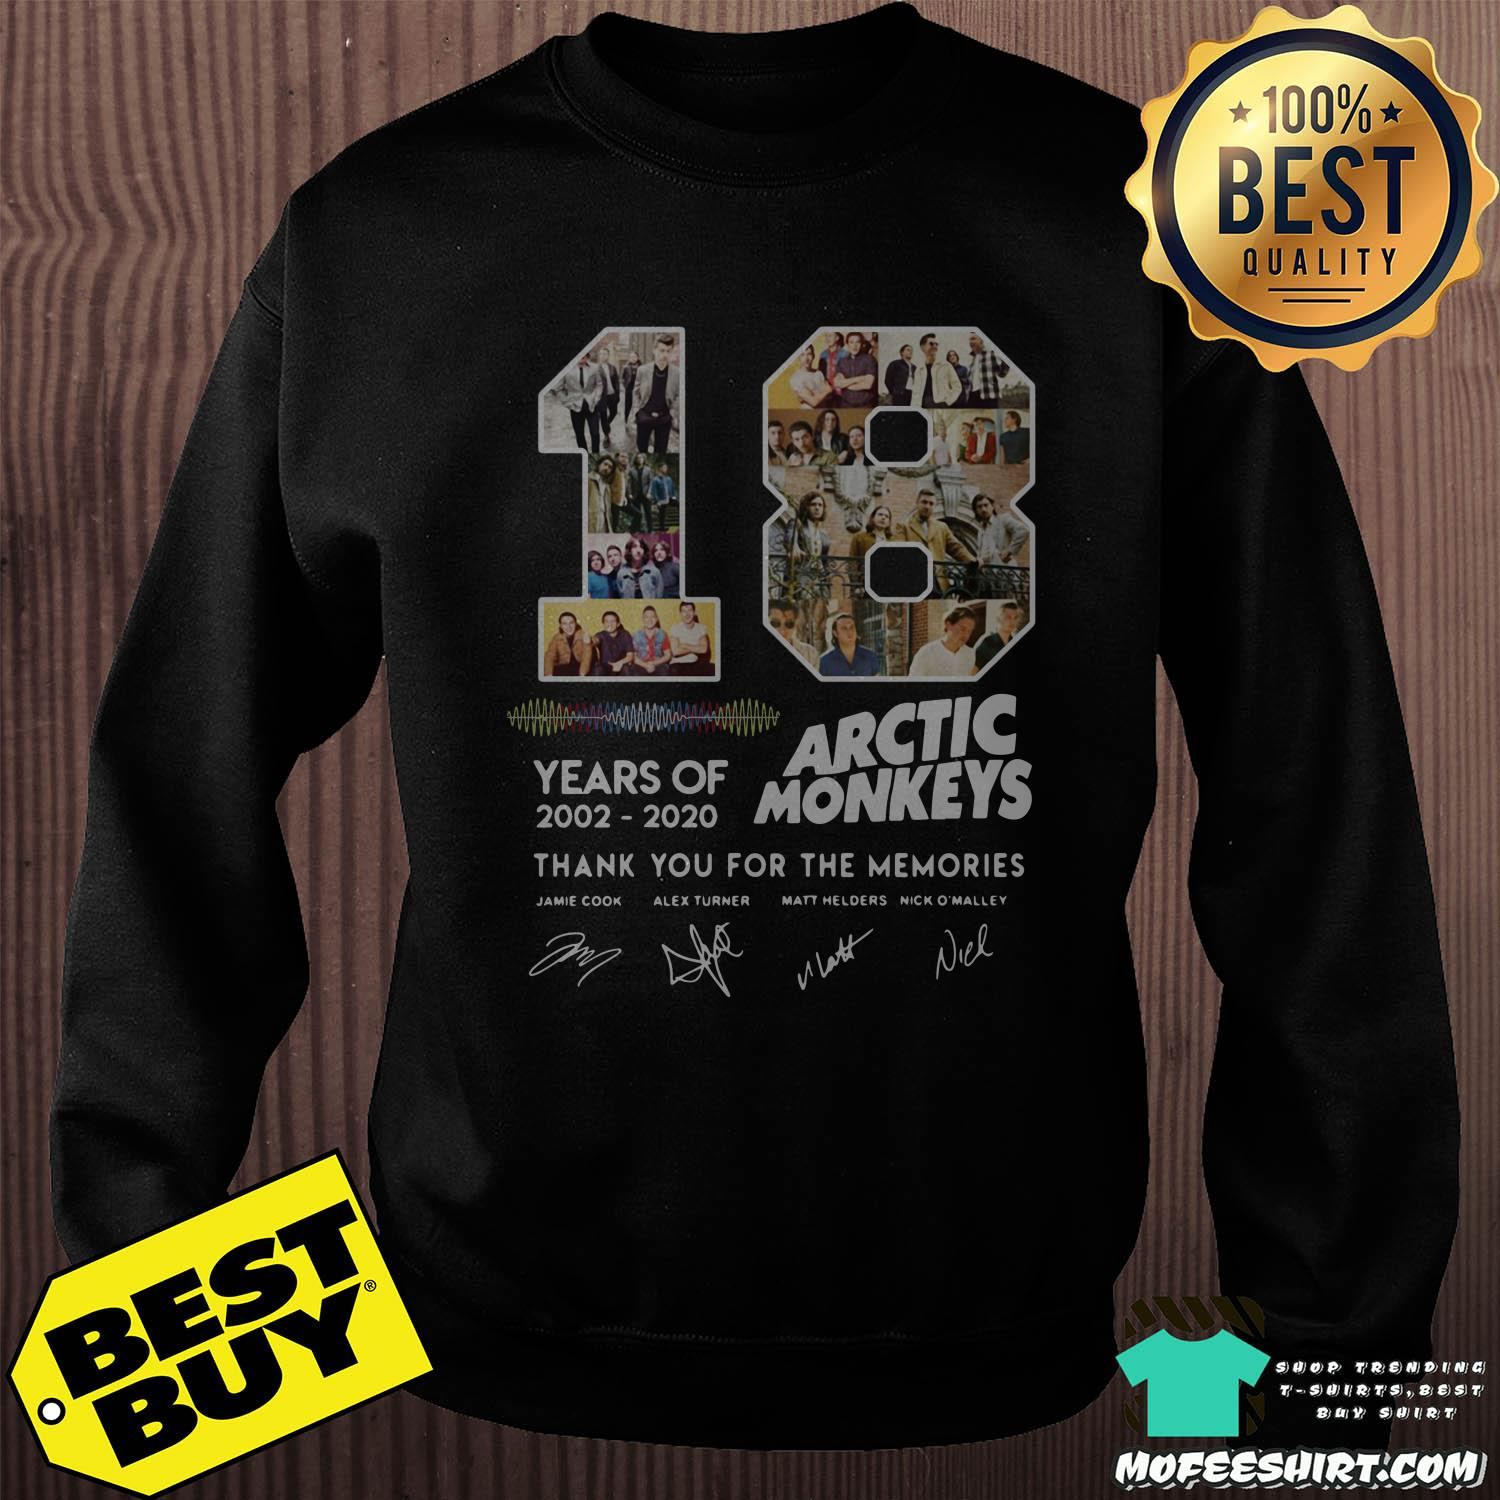 18 years of 2002 2020 arctic monkeys thank you for the memories signature sweatshirt - 18 Years Of 2002 - 2020 Arctic Monkeys Thank You For The Memories Signature Shirt